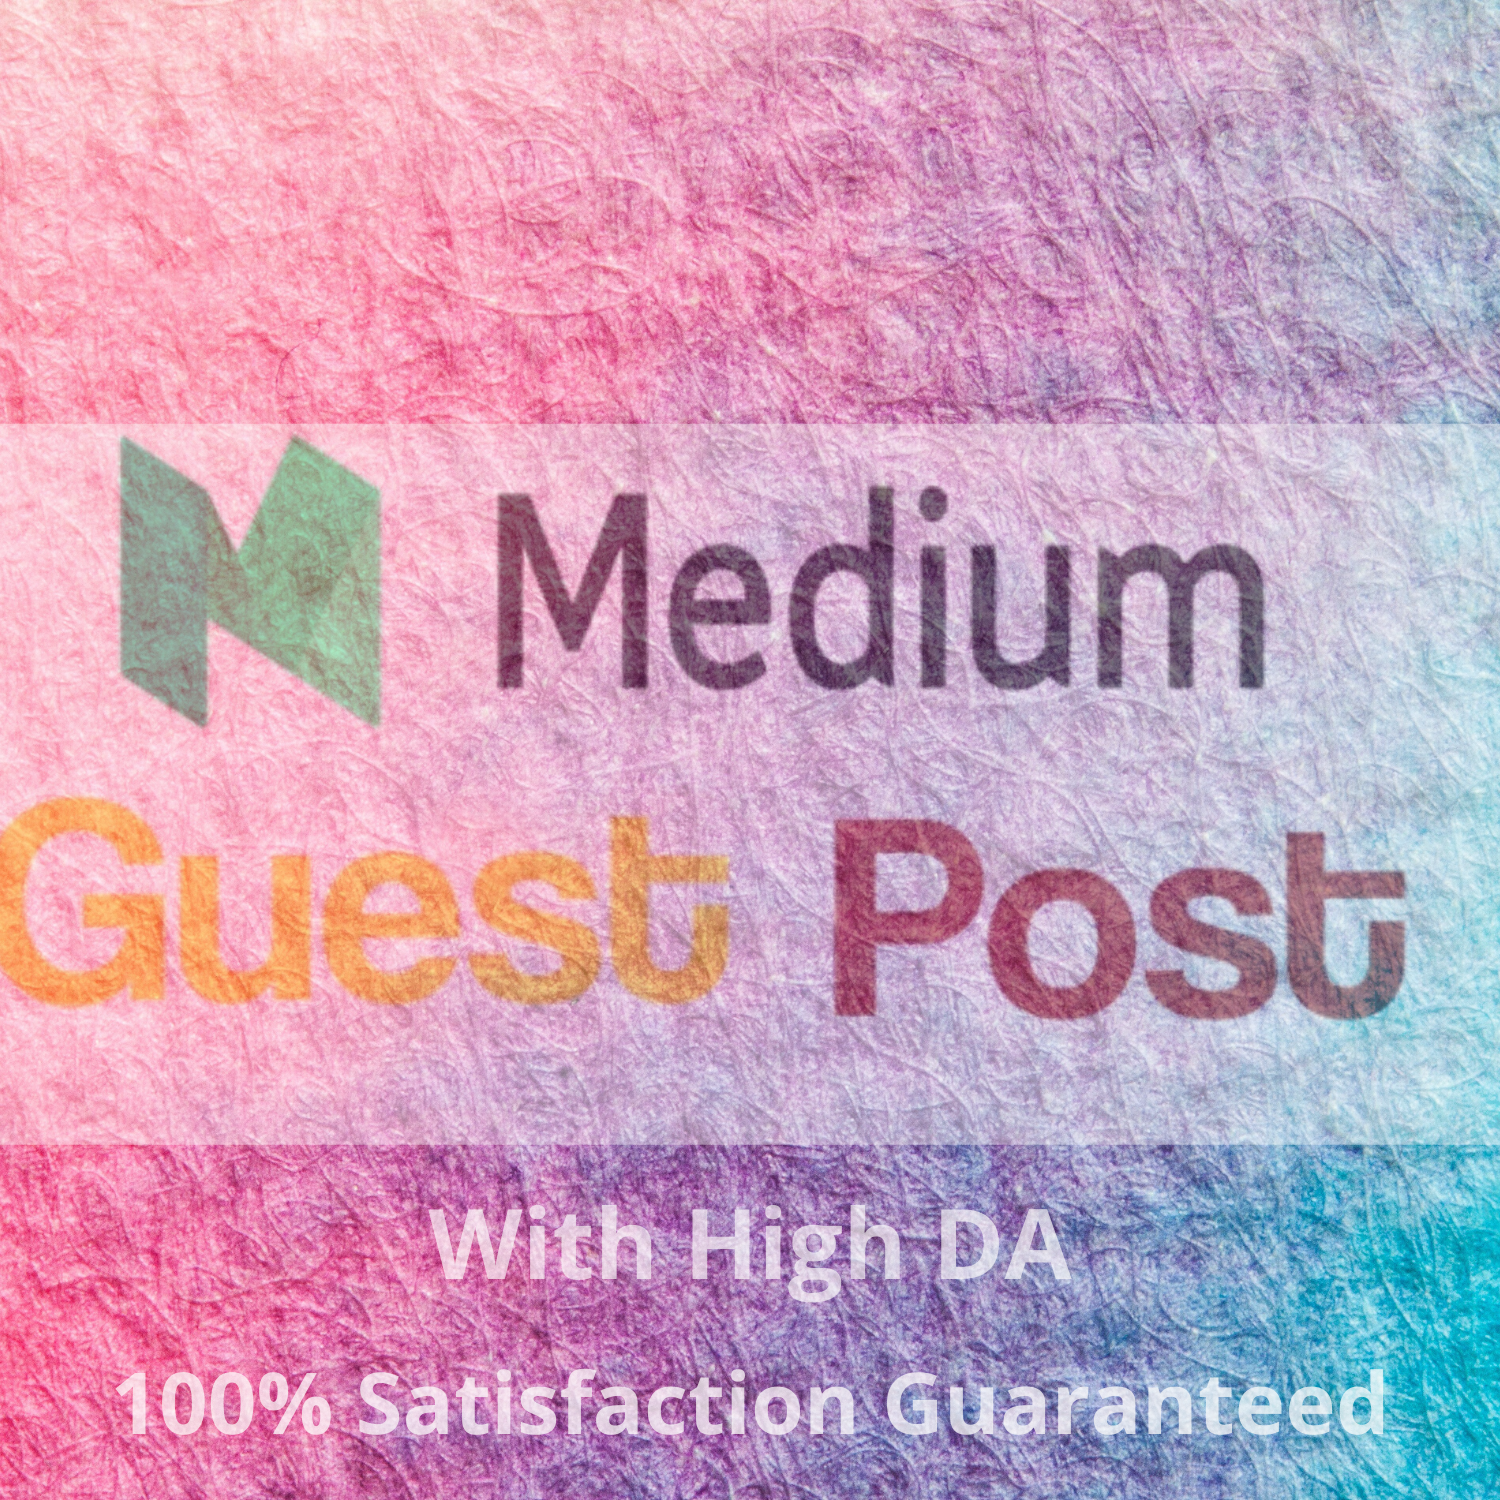 Write and publish guest post on medium with high DA